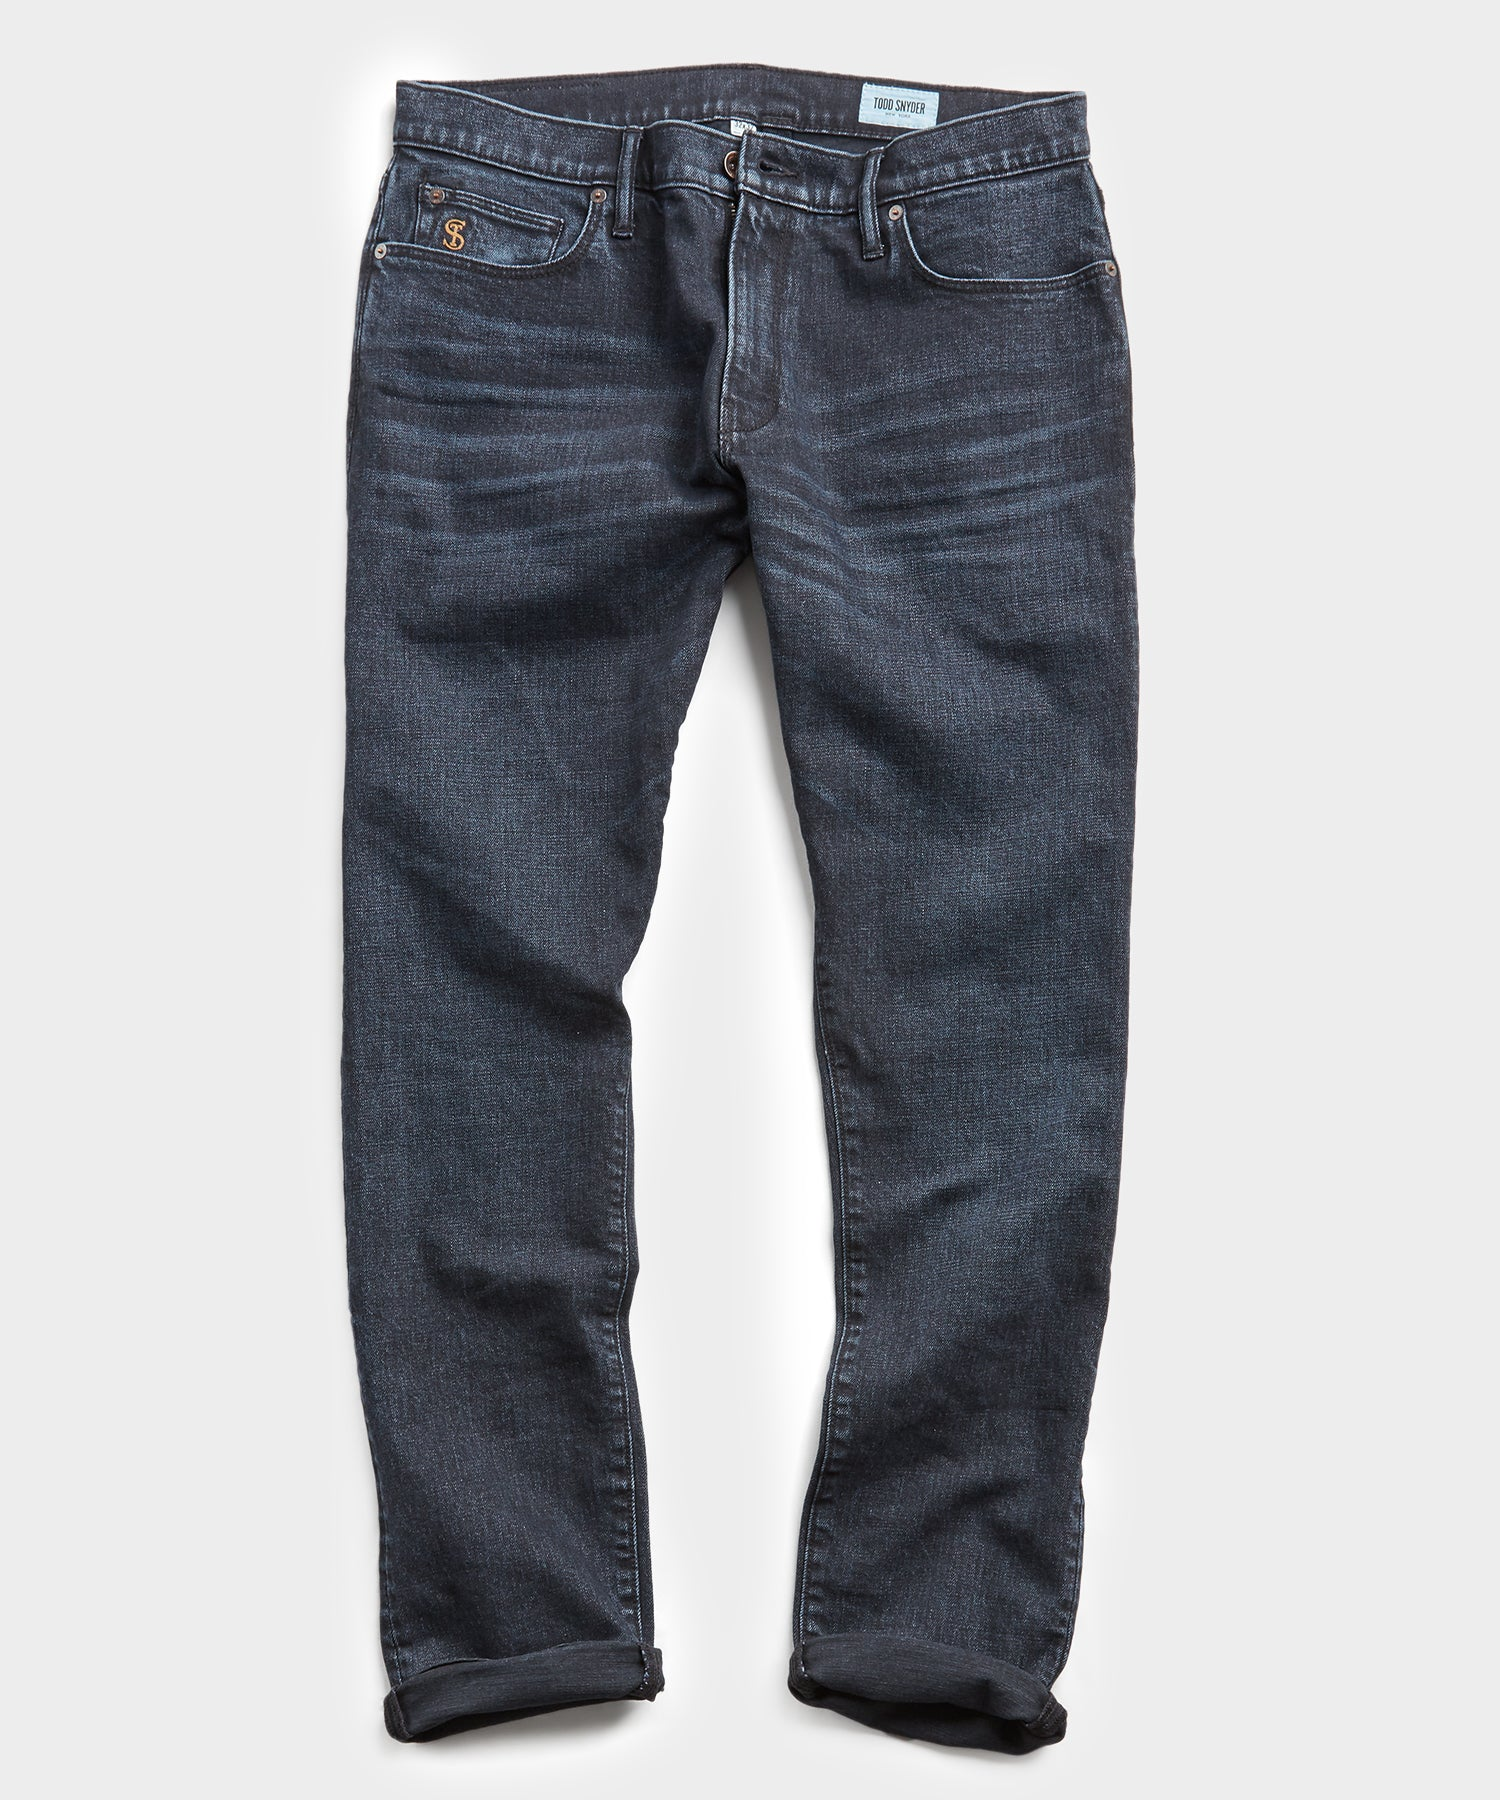 Slim Fit Black Ink Wash Denim Jean